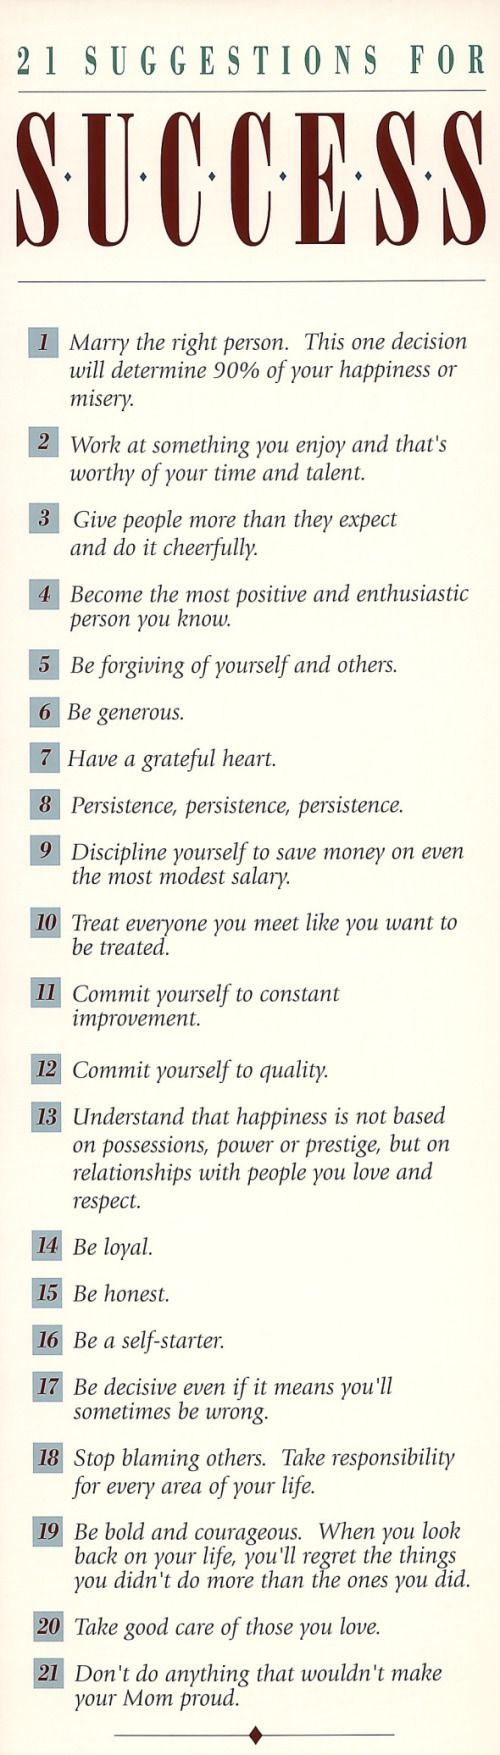 21 suggestions for success pdf